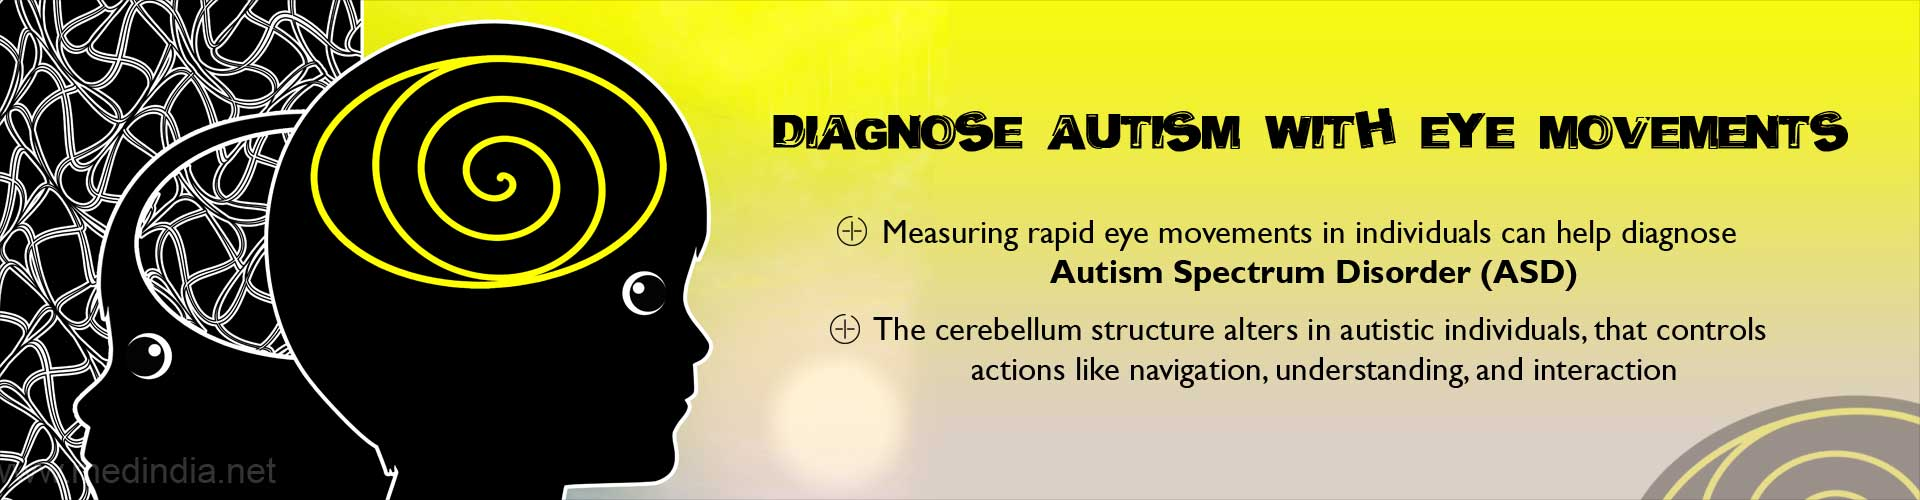 Diagnose autism with eye movements